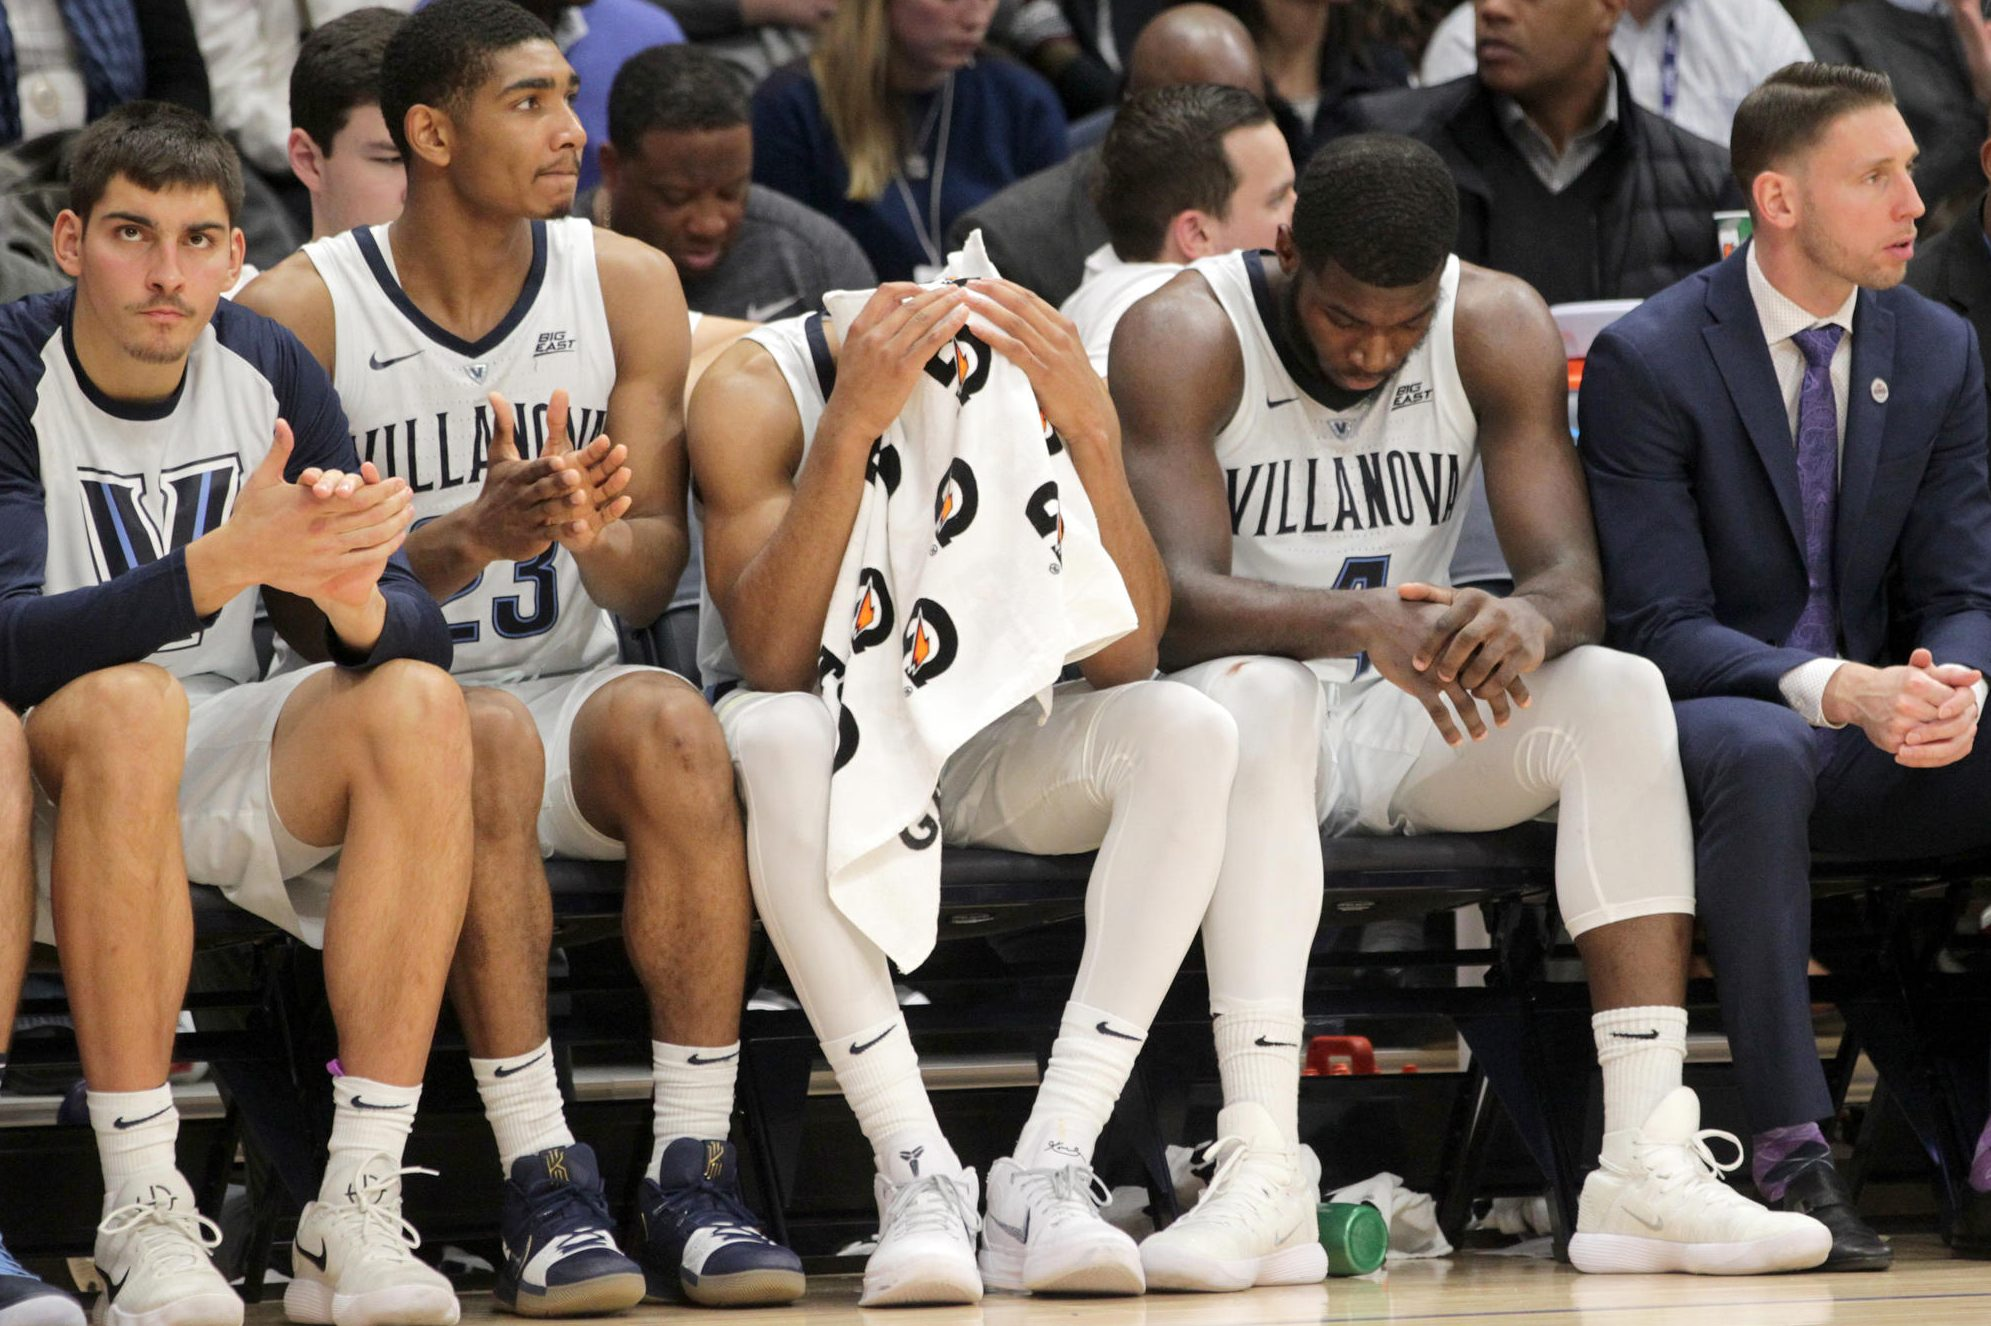 The Villanova team shows their dejection on the bench L-R: Dylan Painter, Jermaine Samuels, Phil Booth, Eric Paschall, and Assistant Coach Mike Nardi in the final minutes of their 73-46 loss to Michigan on Nov. 14, 2018 at Finneran Pavilion.